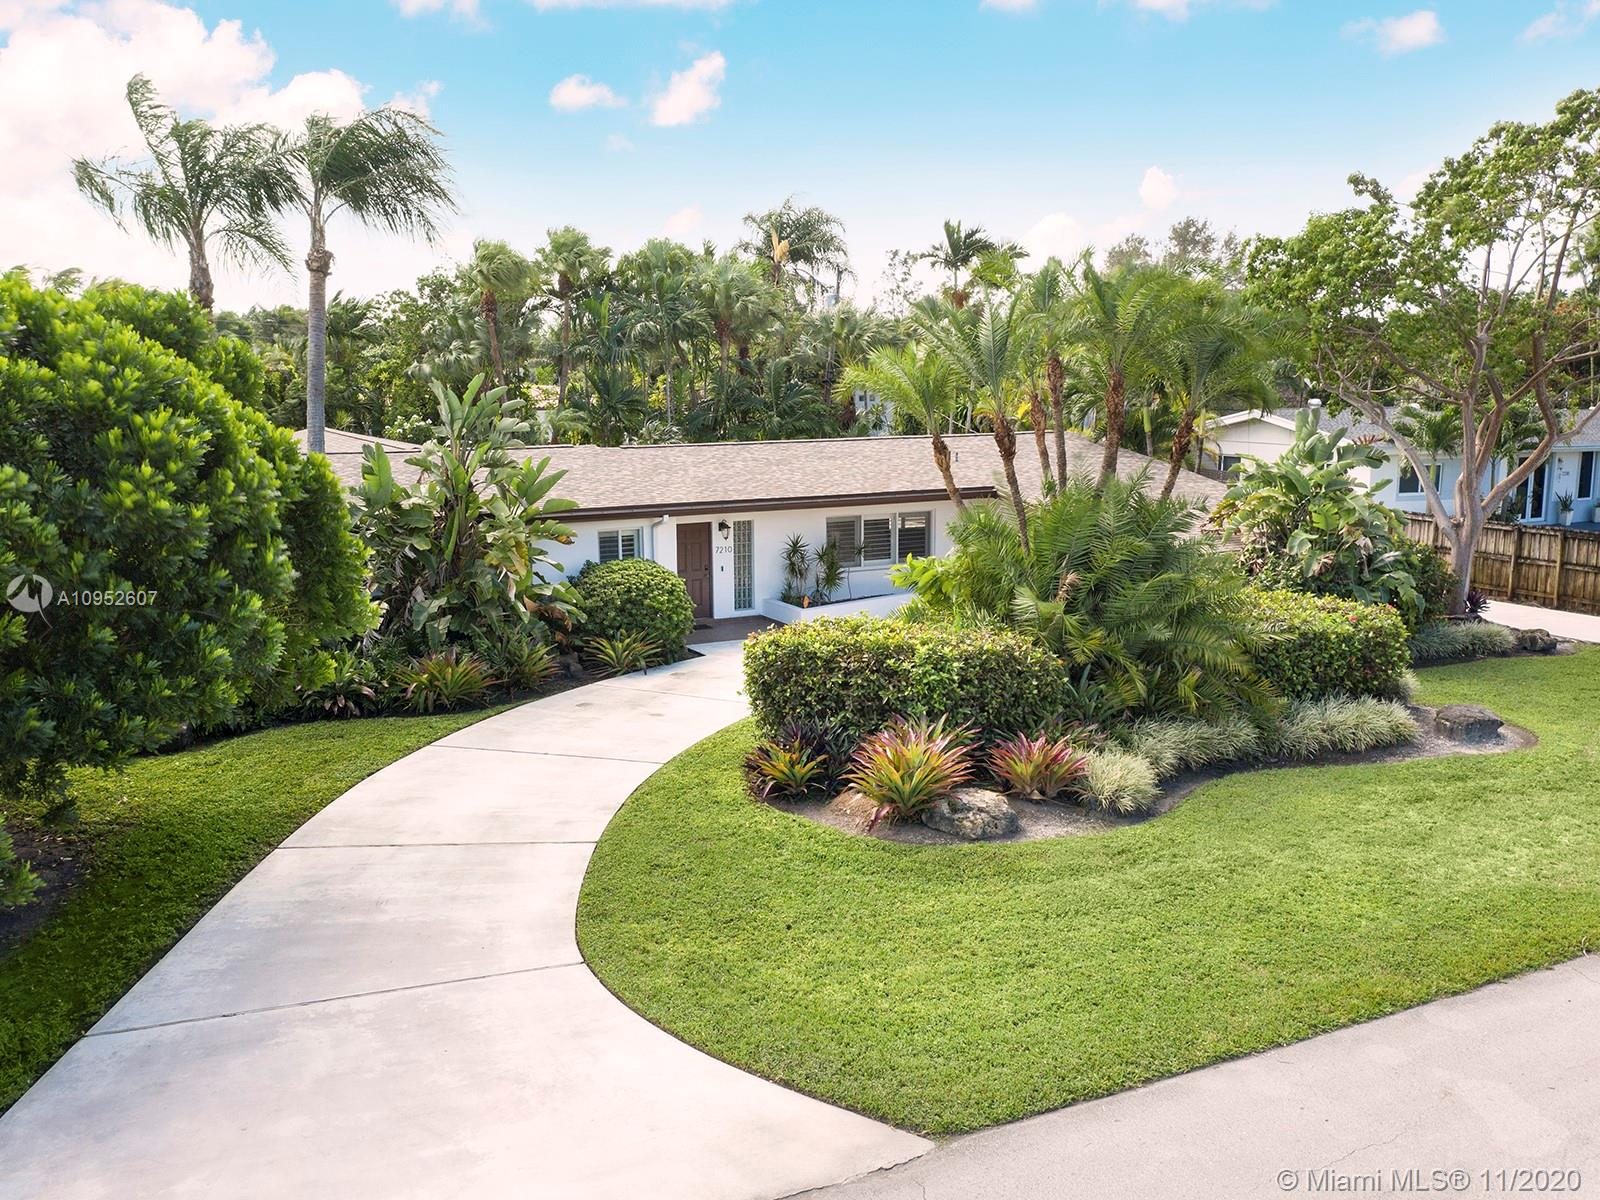 South Miami is looking for it's next homeowner and this eye catching mid-century home is just the right fit for your family. The home's 4 bedrooms and 3 baths are strategically placed to welcome the outdoors in from any vantage point in the home.  Lush, mature palms and vegetation along with coral rock surround a well thought out lagoon style pool and patio area. A new master bathroom, designer walk-in closet and roof have been upgraded for you. Impact windows will protect you during stormy times while allowing you a birds-eye view to Miami's ever present inclement weather.  The home boasts a domestic kitchen, plantation shutters and beautiful wood floors that lend to the South Florida lifestyle. Centrally located, this home delivers without compromising tasteful finishes or travel time.